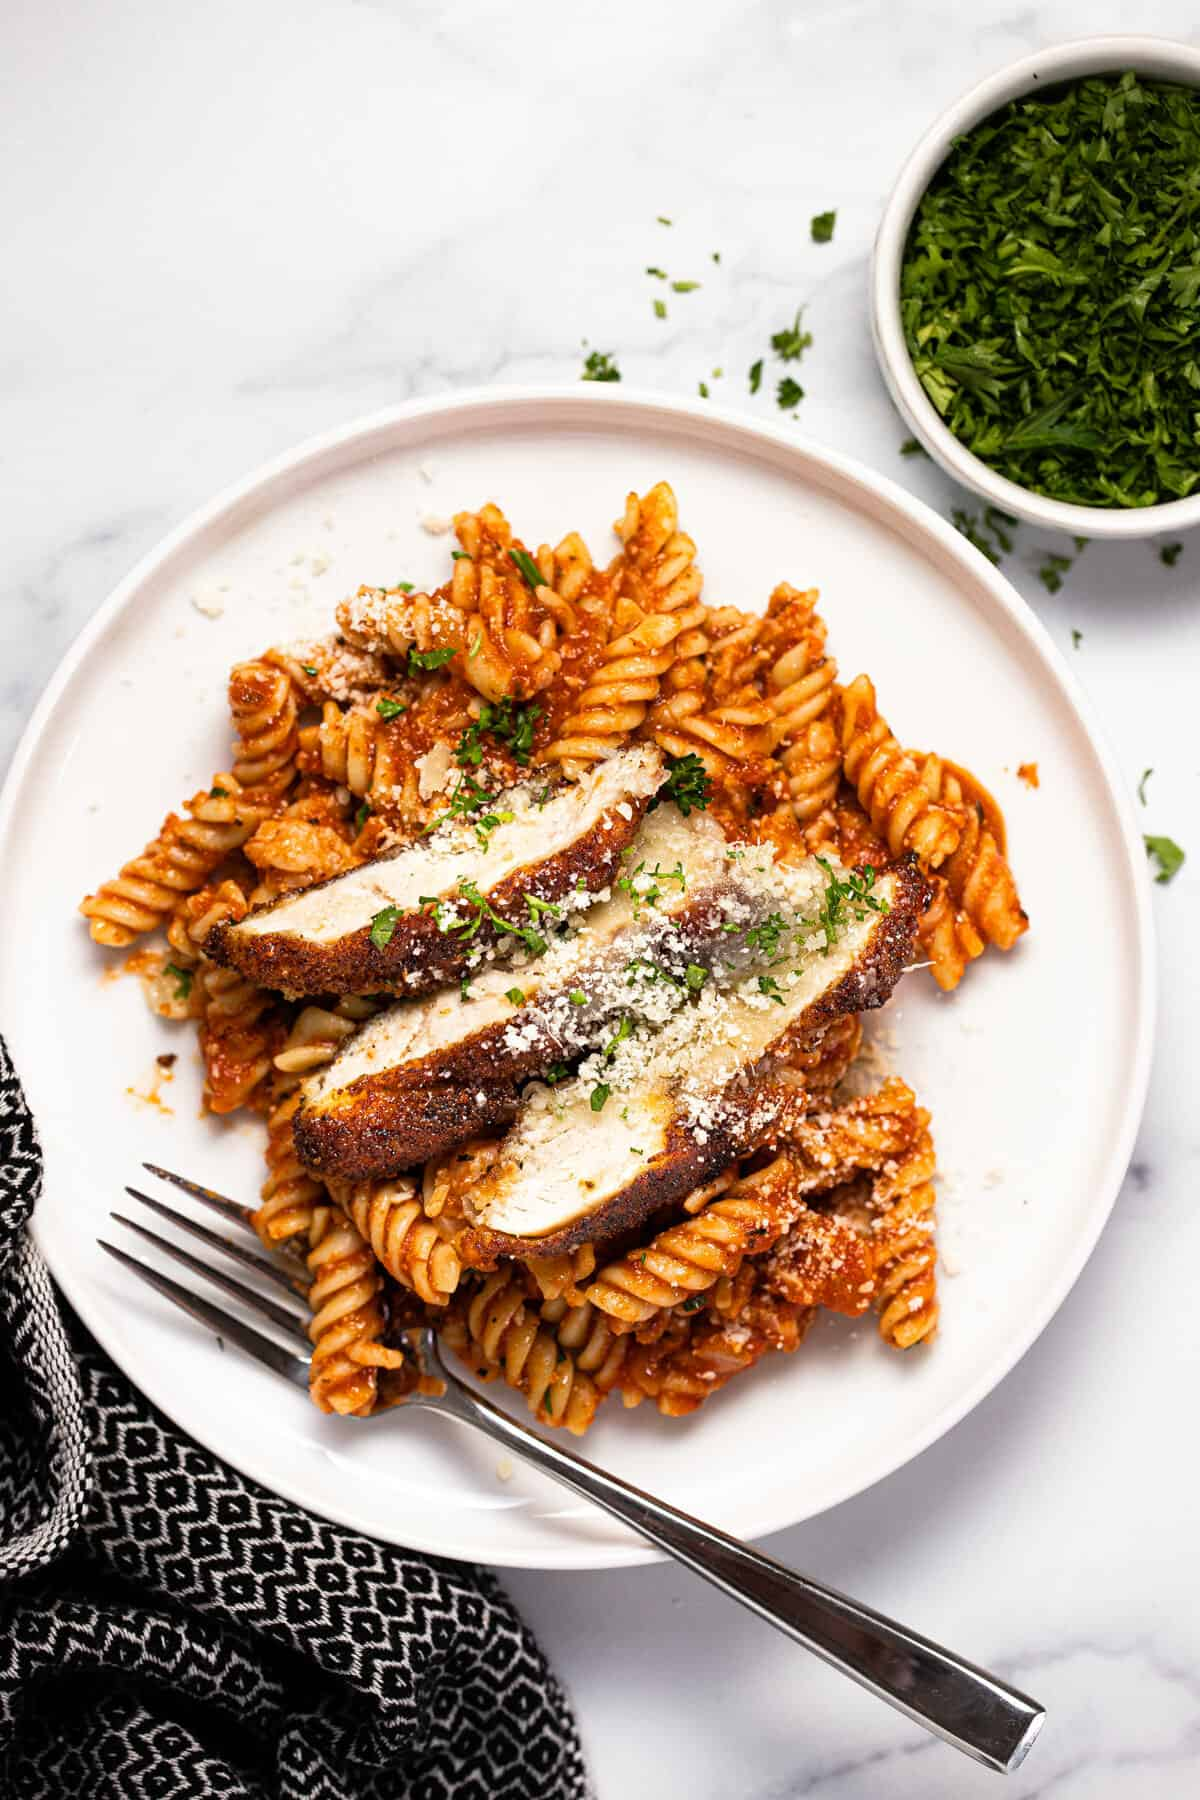 White plate filled with chicken Parmesan casserole garnished with fresh parsley